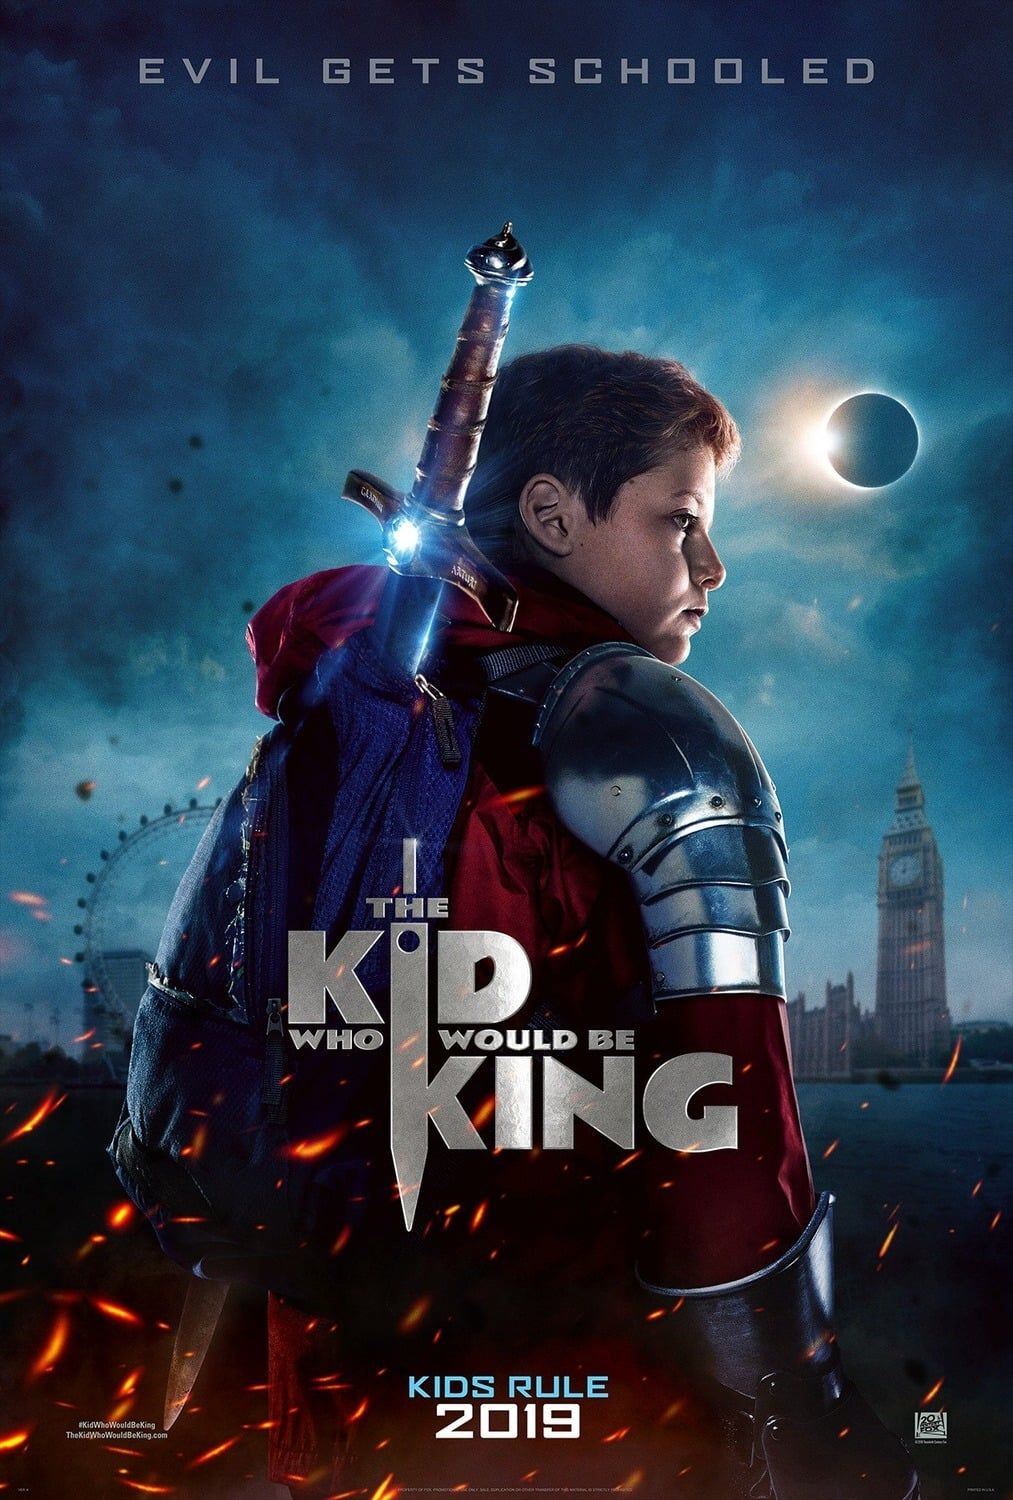 Watch The Kid Who Would Be King FULL MOVIE HD1080p Sub